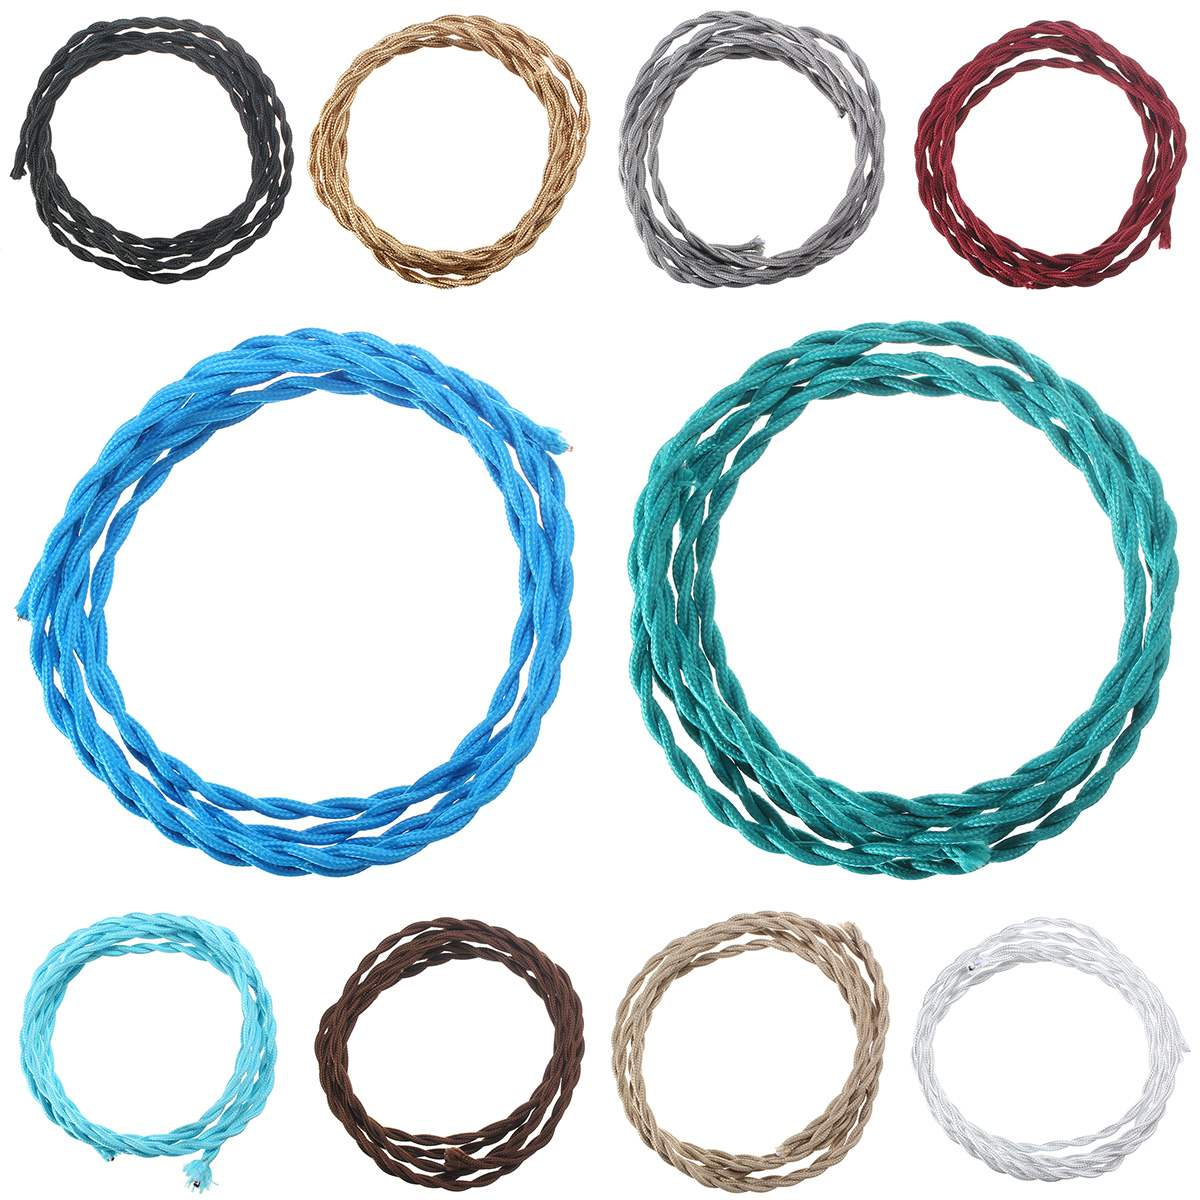 1M 2 Core Vintage Twist Electrical Wire Color Braided Wire Fabric ...